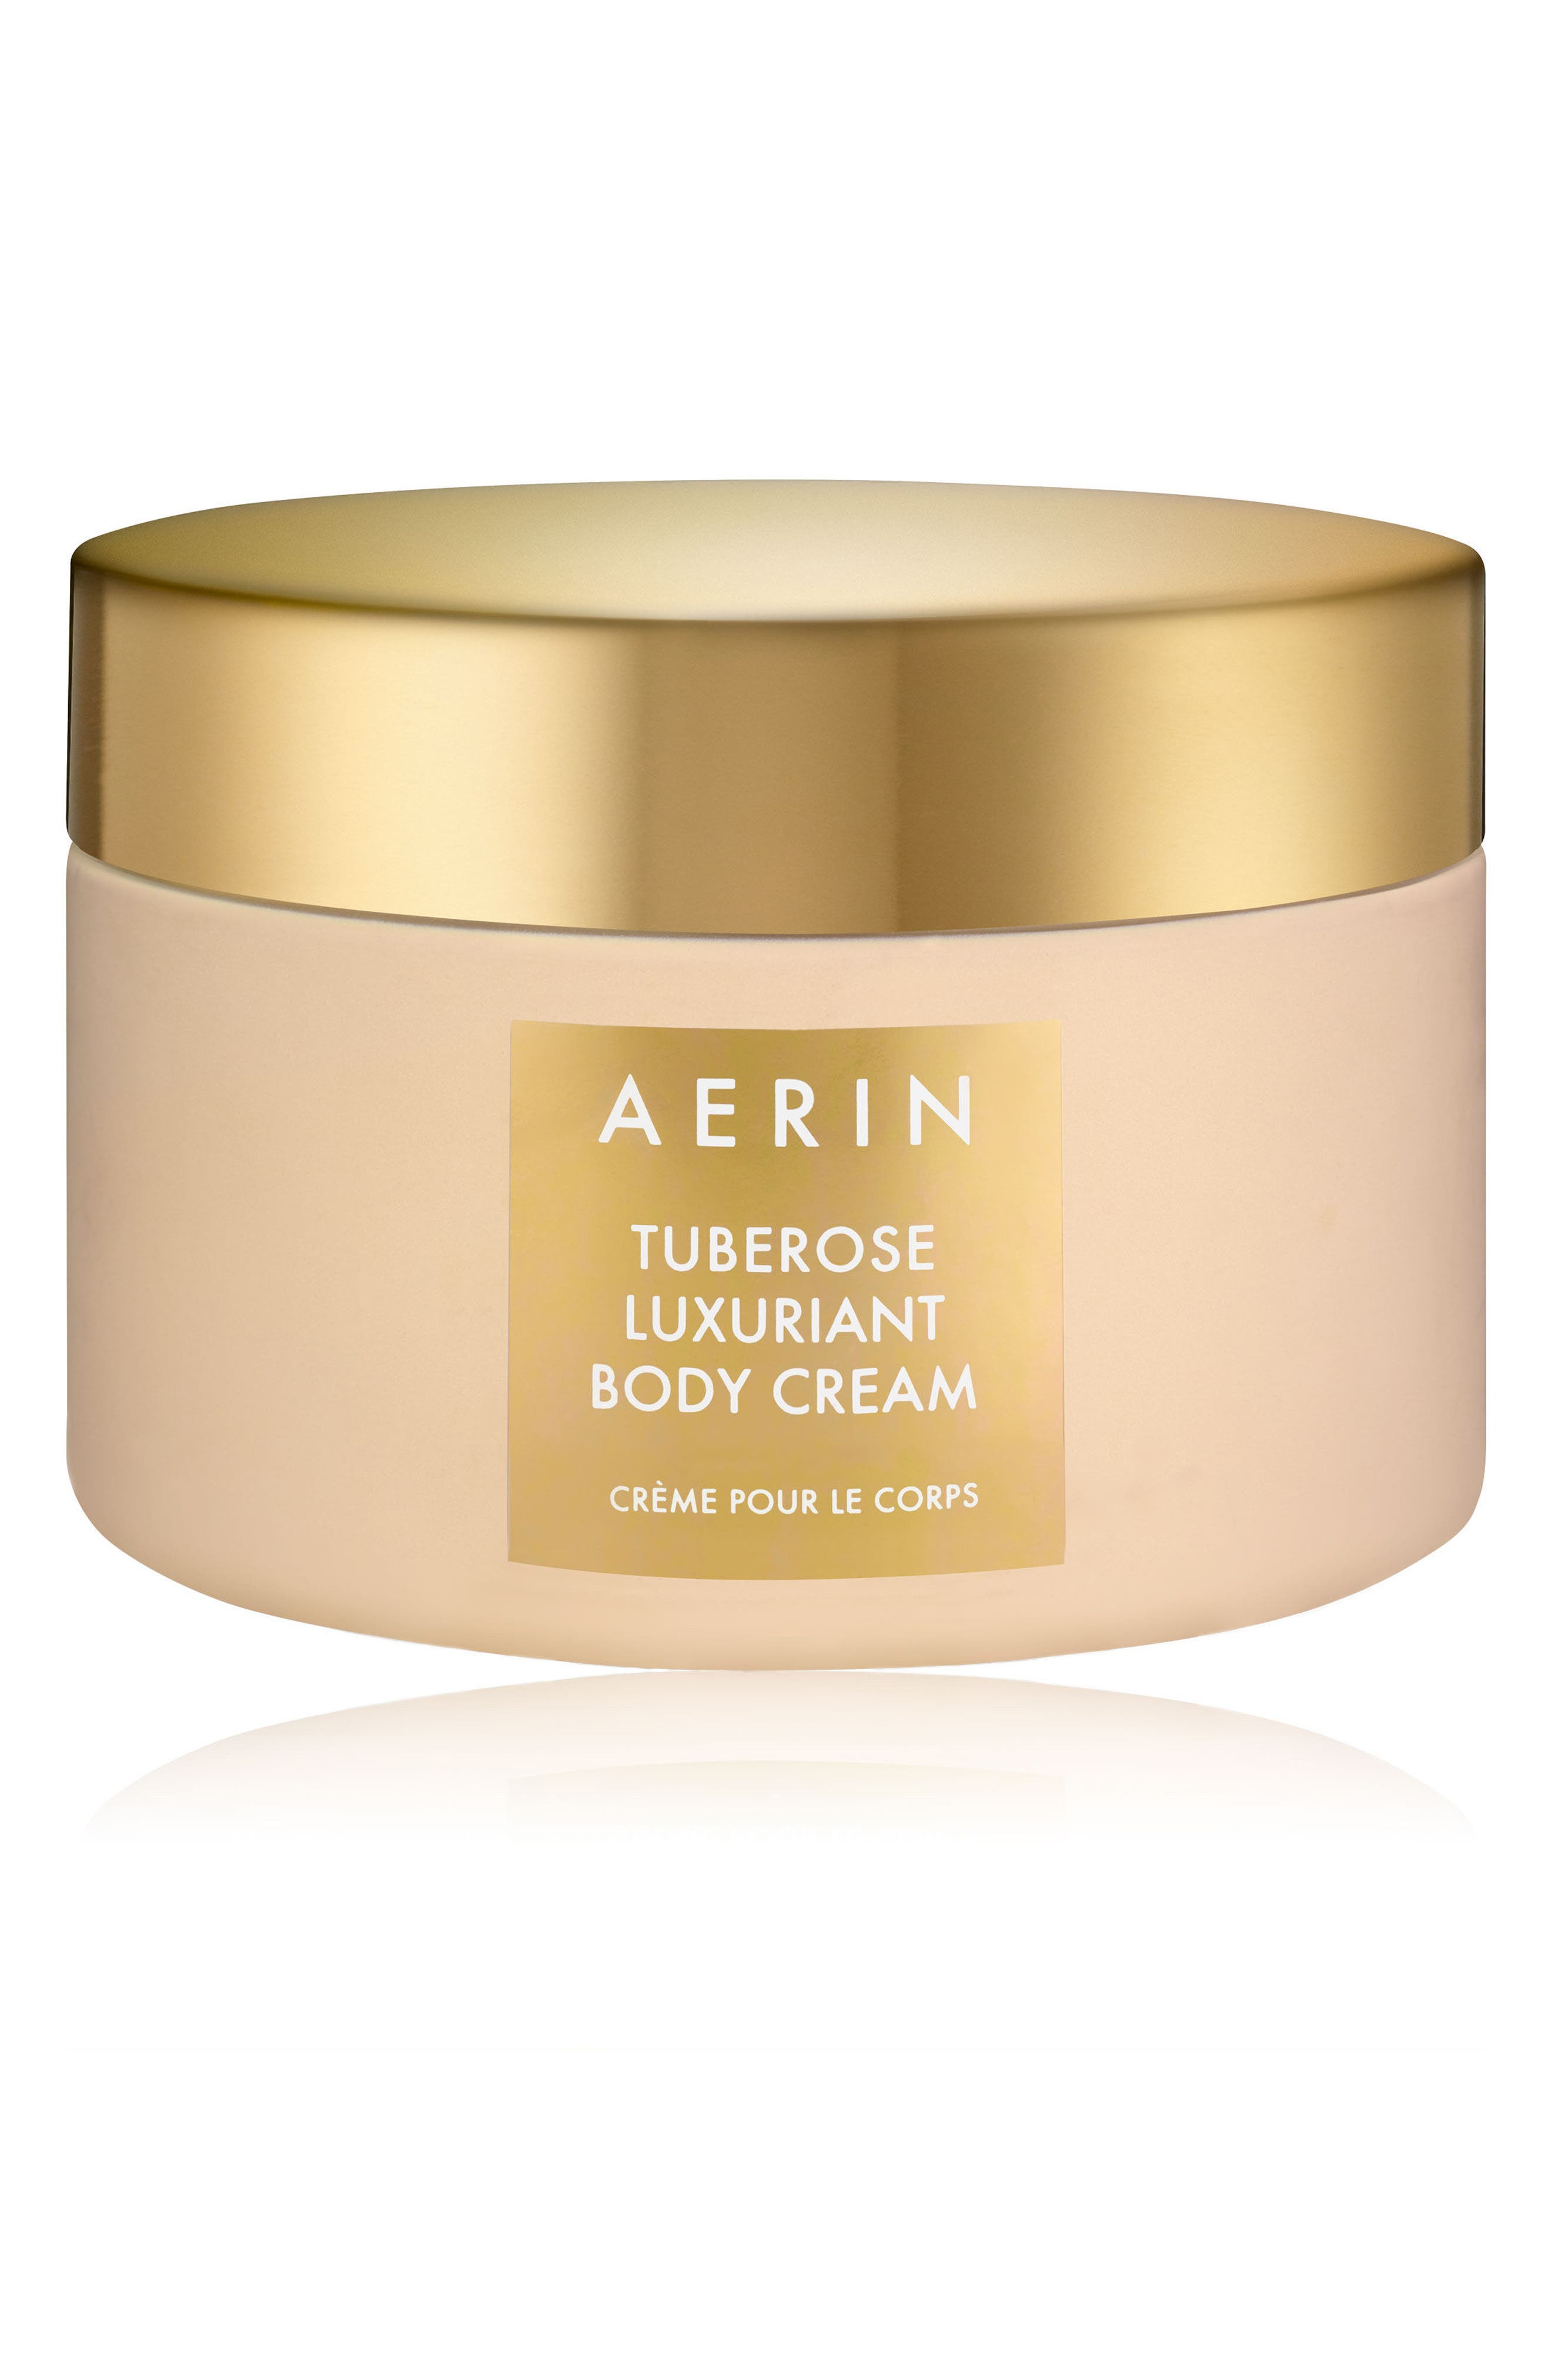 AERIN Beauty Tuberose Luxuriant Body Cream,                         Main,                         color, 000